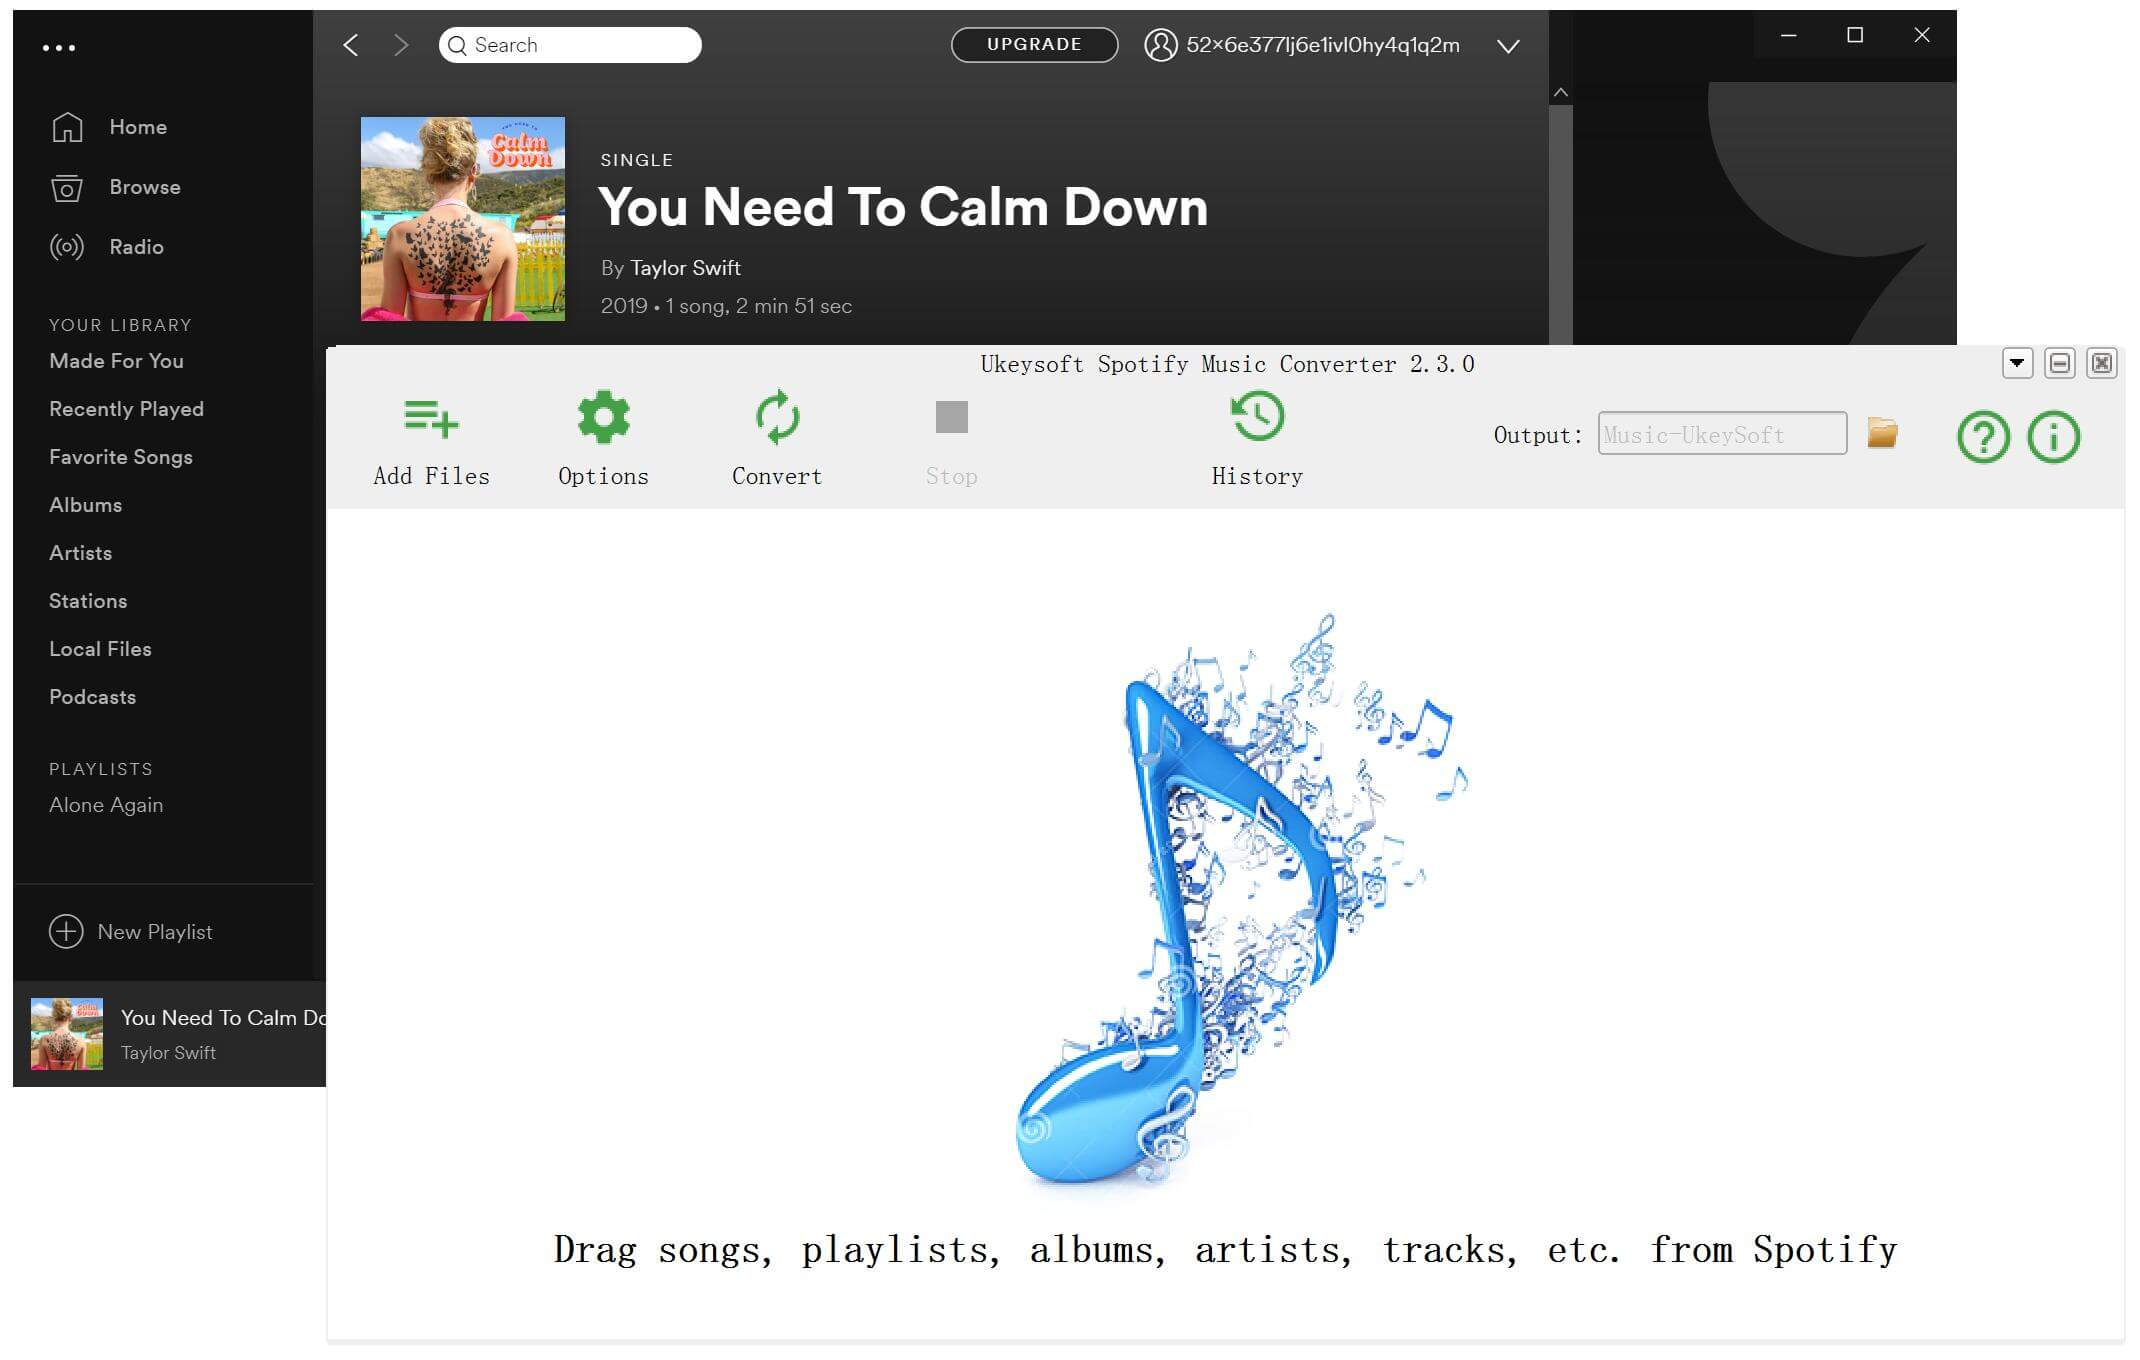 You Need To Calm Down Taylor Swift MP3 Download from Spotify